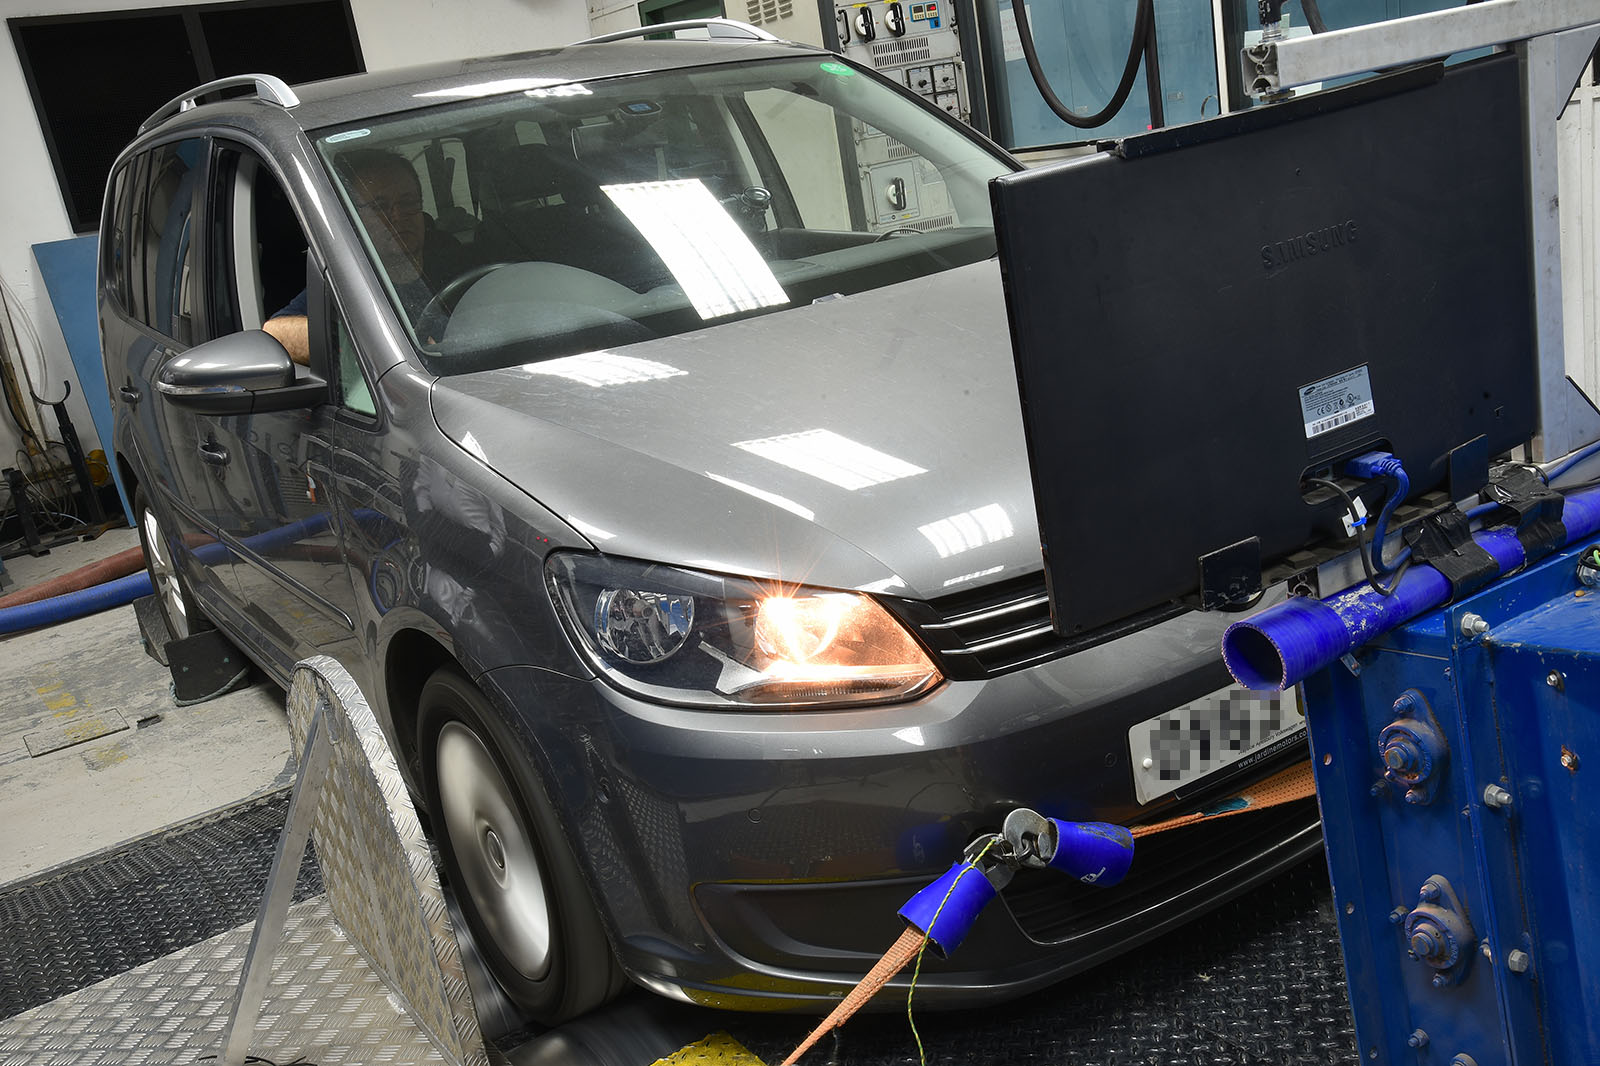 Autocar Test Shows Worse Economy After Volkswagen Diesel Fix Touran Exterior Light Control Wiring System Was A 2013 Fitted With The Ea189 16 Litre Engine One Of Three Units Sold In Uk By Vw Cheat Software That